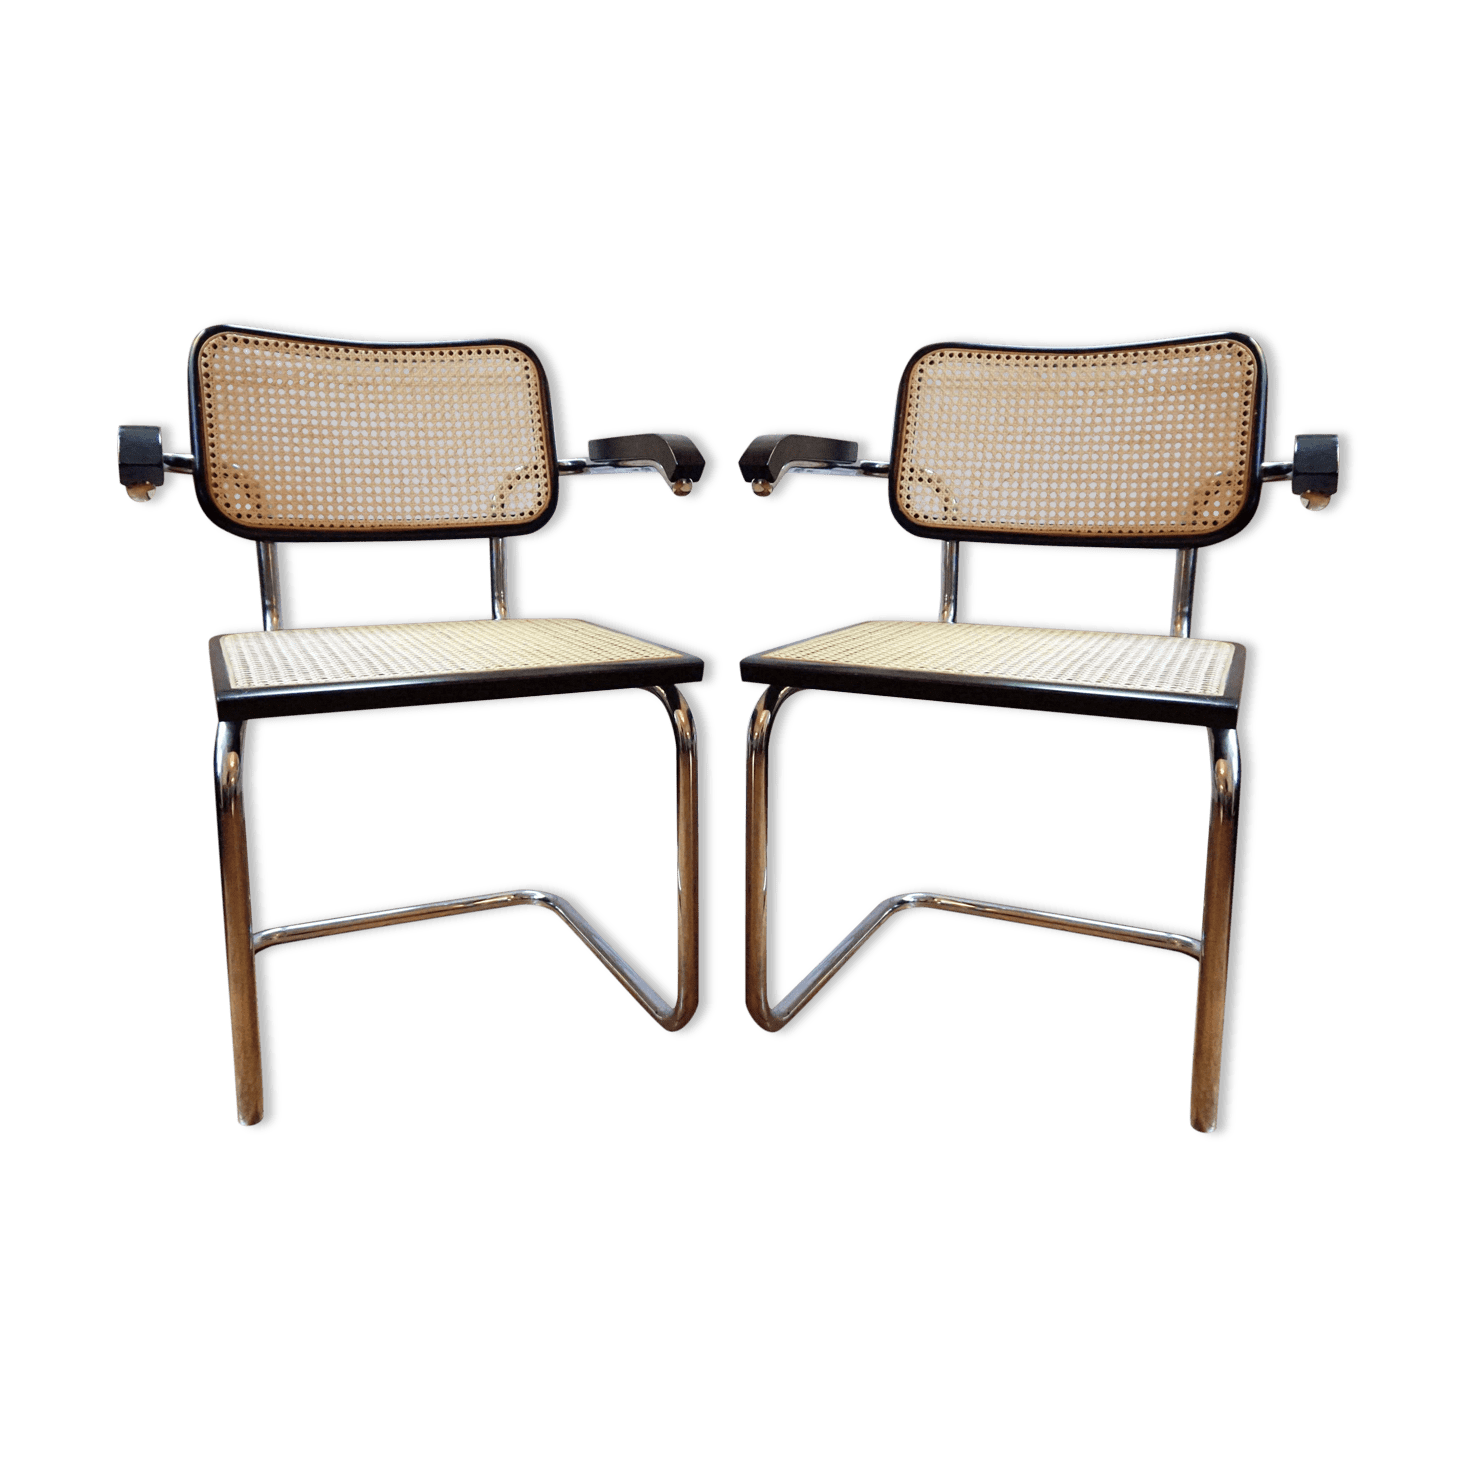 marcel breuer cesca chair with armrests desk and set pair of chairs b64 wood black